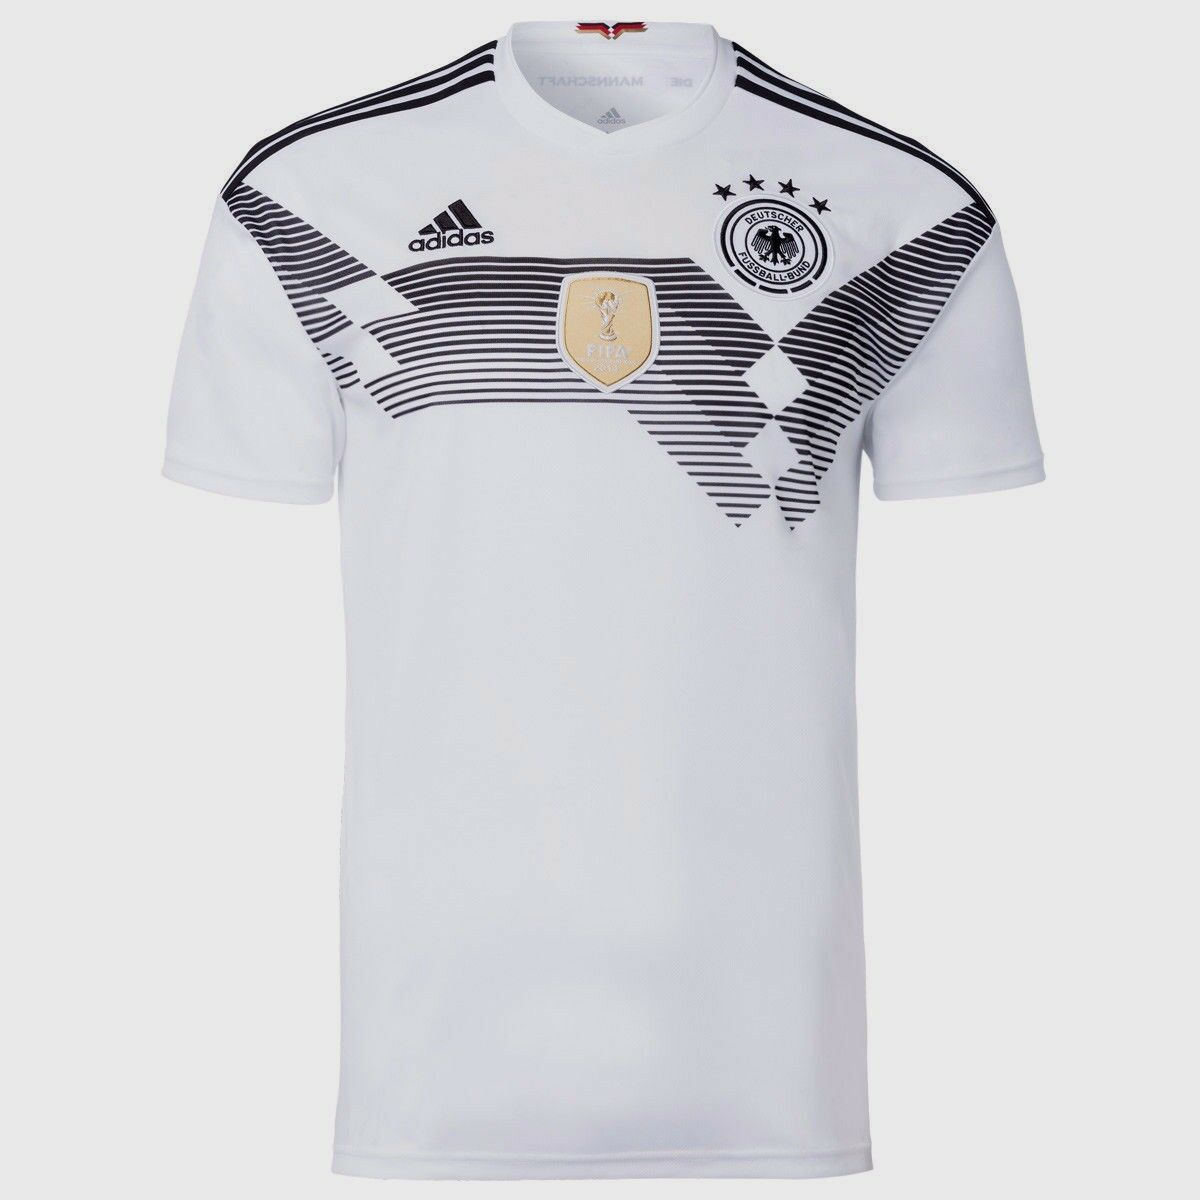 3e23ab599cf40 ADIDAS GERMANY HOME JERSEY JERSEY JERSEY WORLD CUP 2018 White Black. bedc36  Nike ...